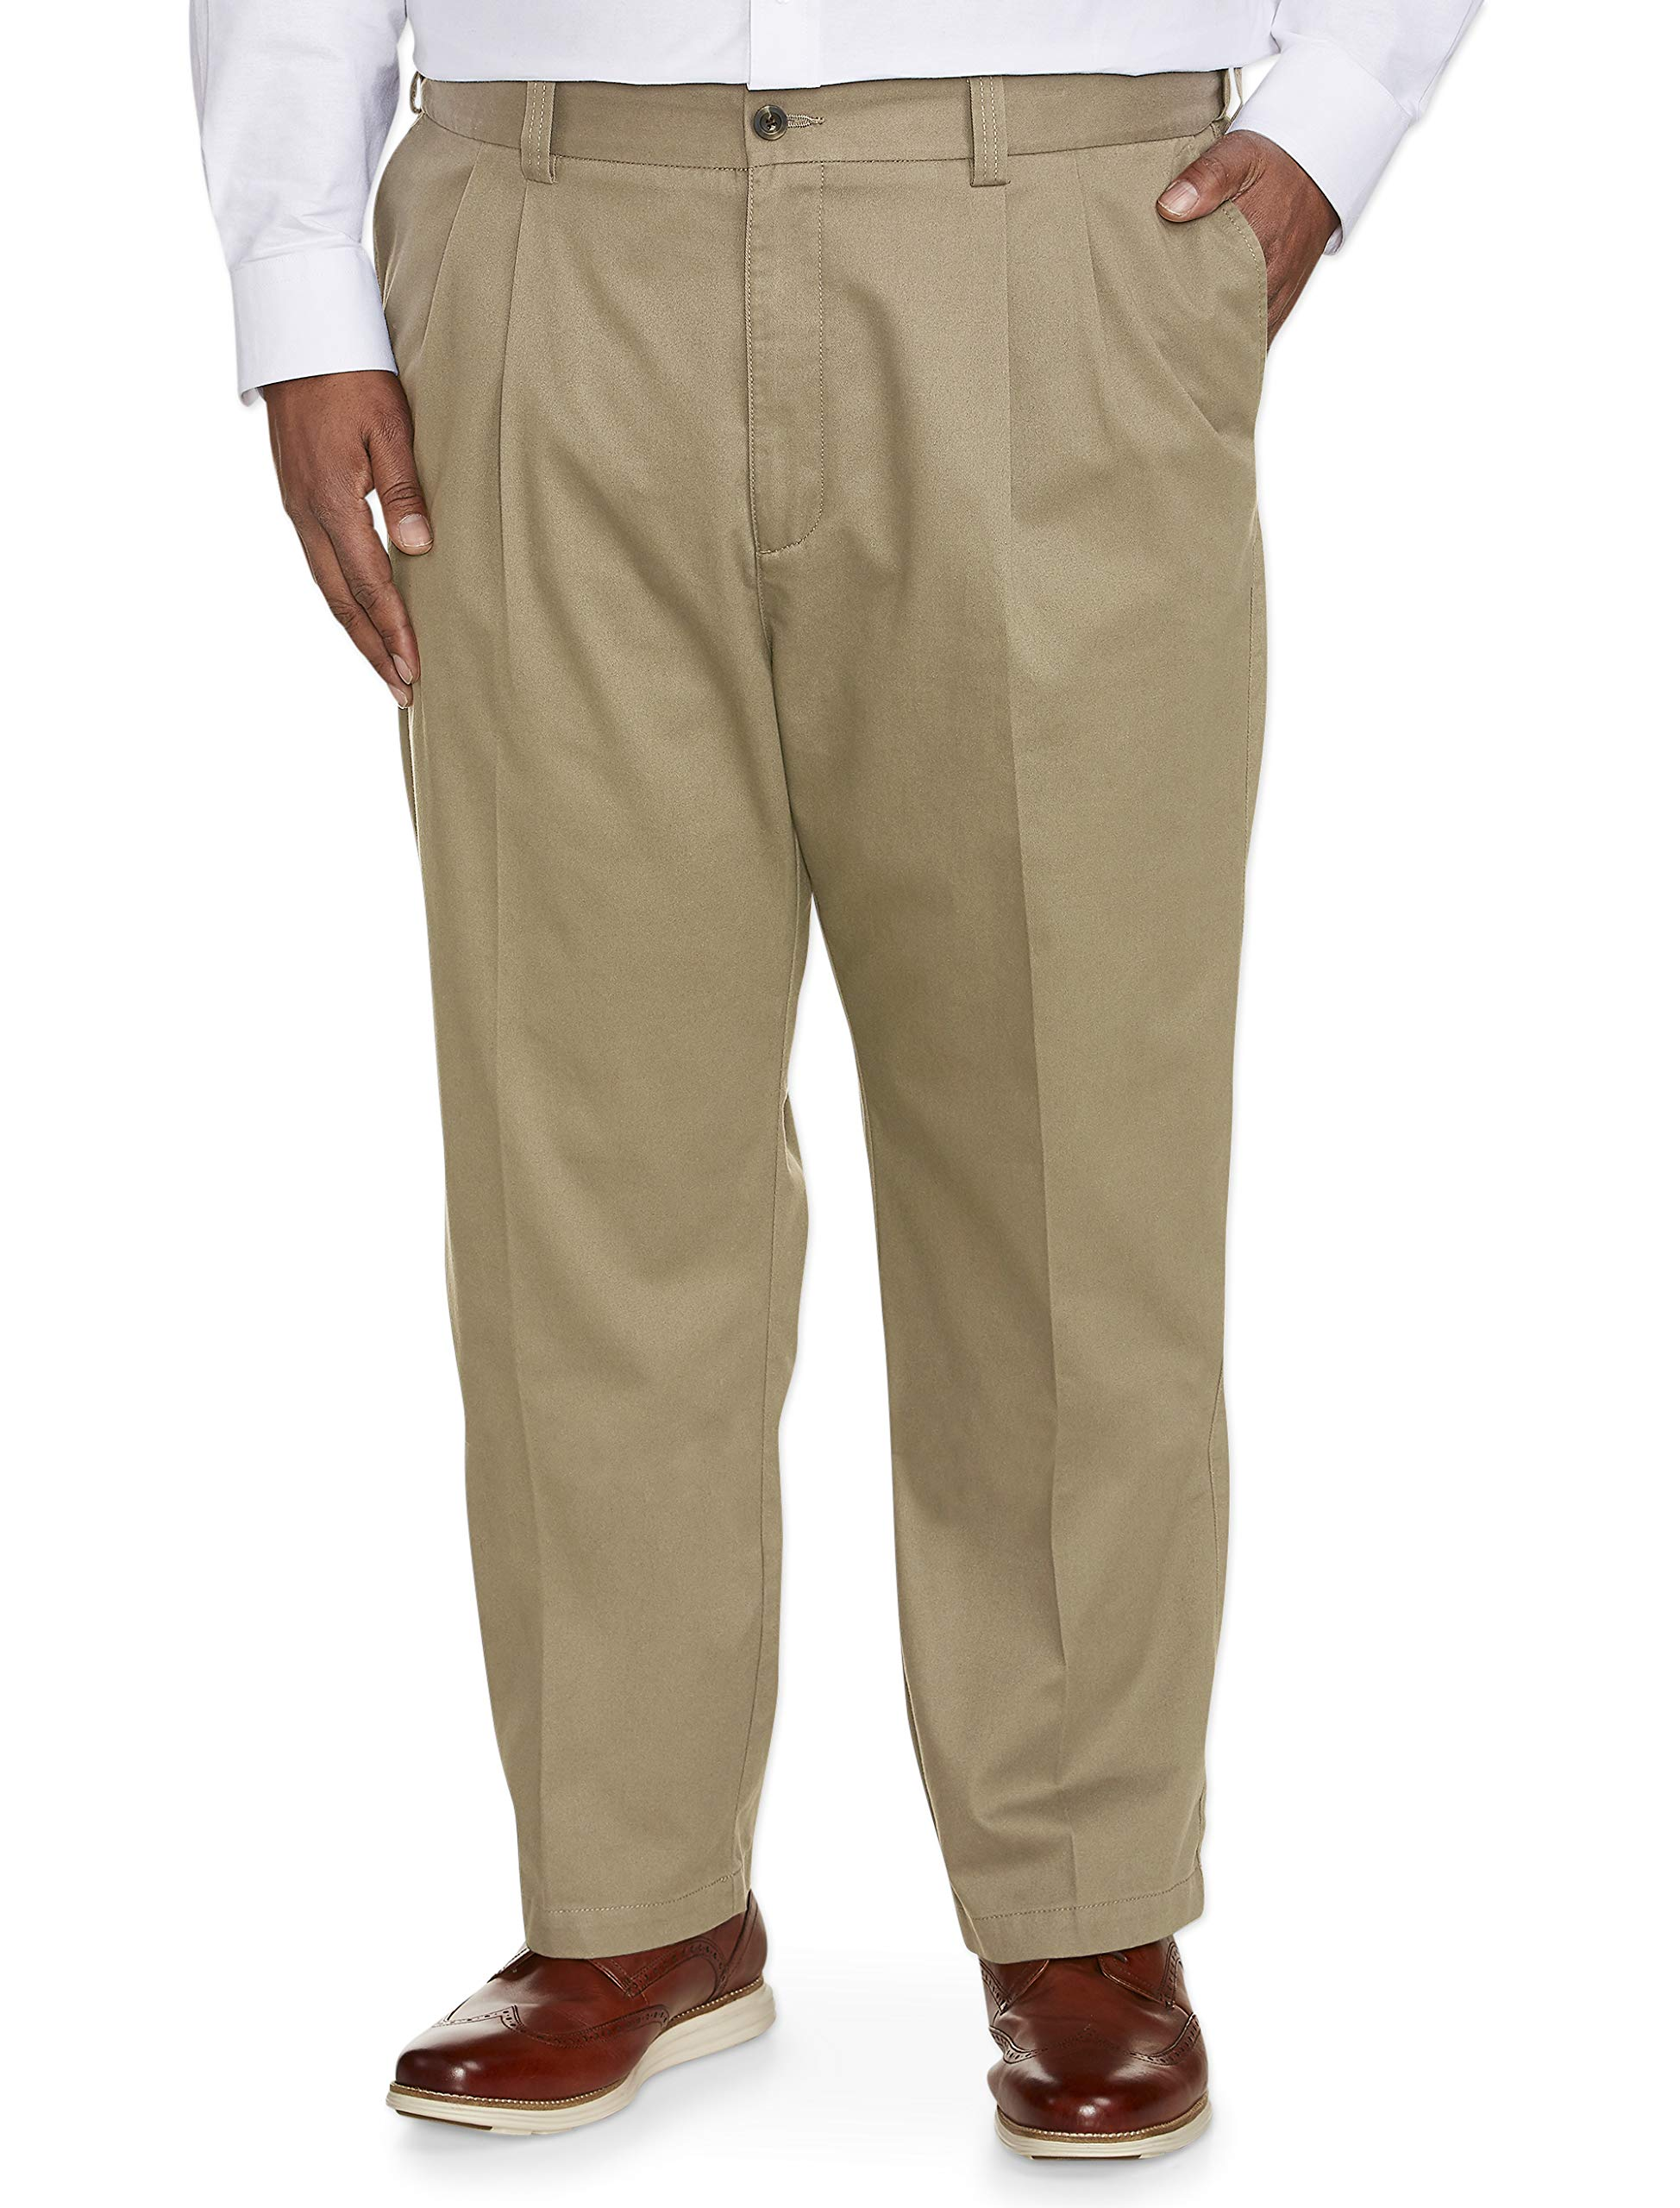 Amazon Essentials Men's Big & Tall Relaxed-fit Wrinkle-Resistant Pleated Chino Pant fit by DXL, Khaki, 52W x 30L